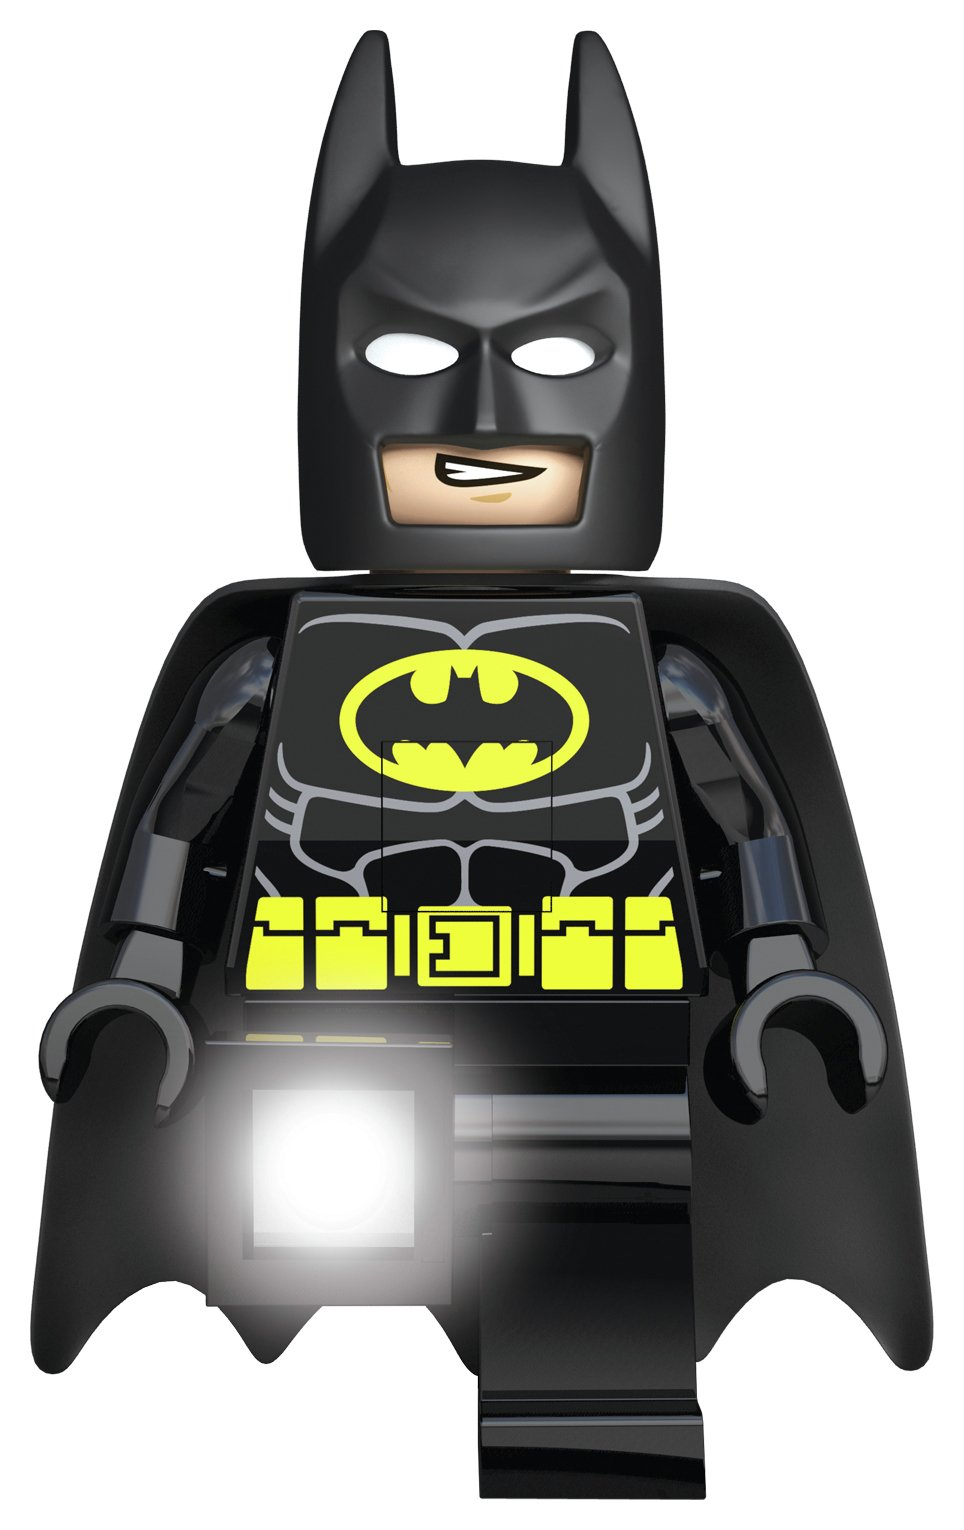 LEGO DC Super Heroes Batman Torch